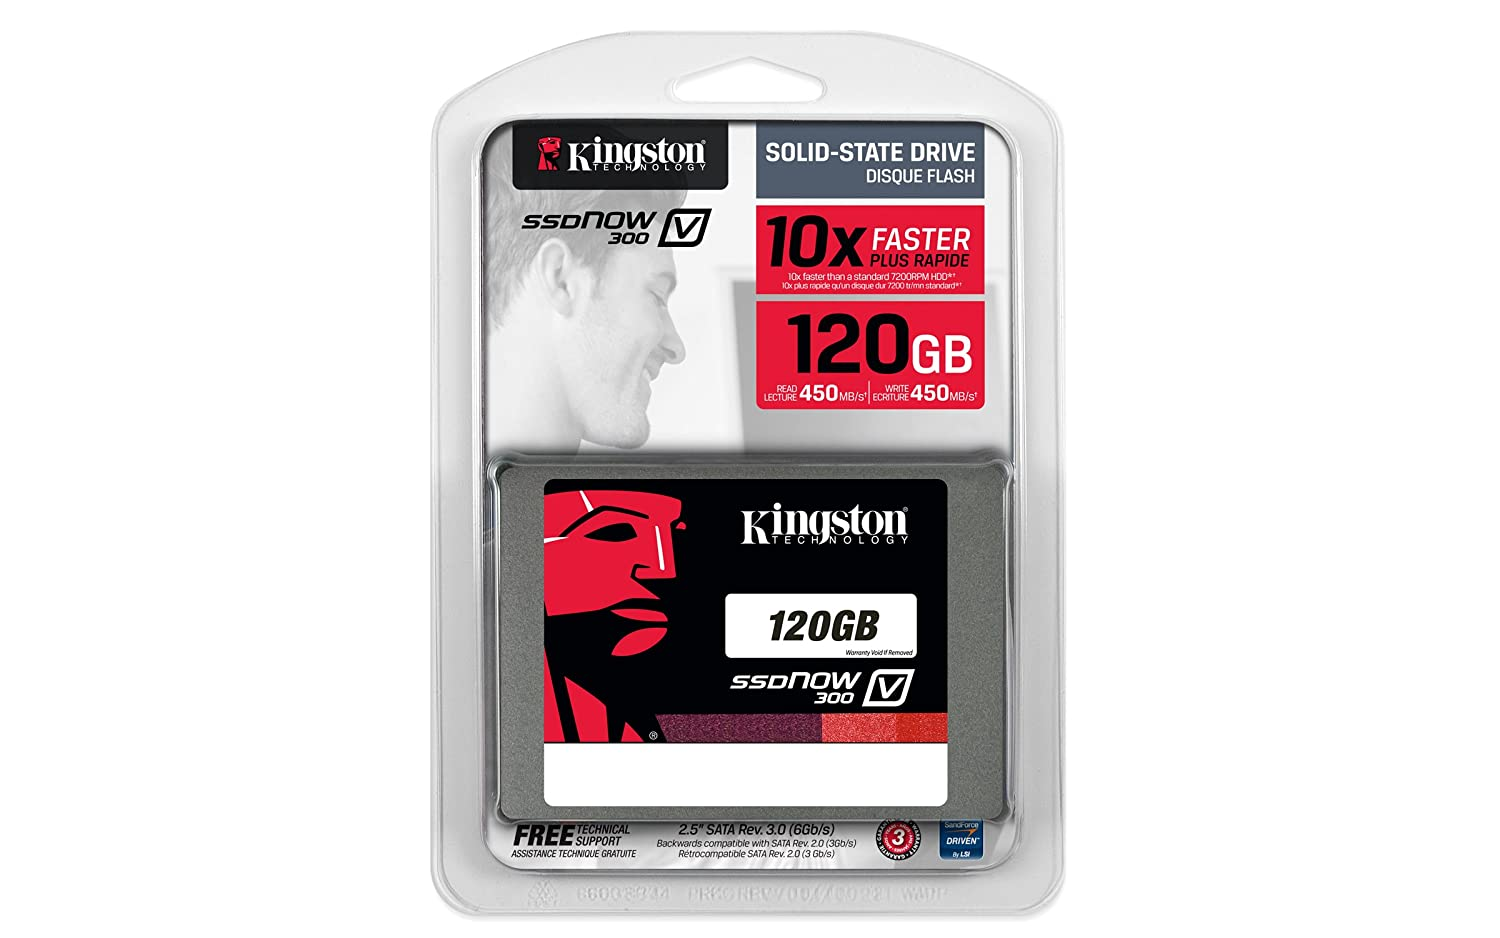 Buy Kingston V300 Ssdnow 120gb Sata 3 25 Solid State Ssd Vgen 120 Gb Drive Online At Low Prices In India Reviews Ratings